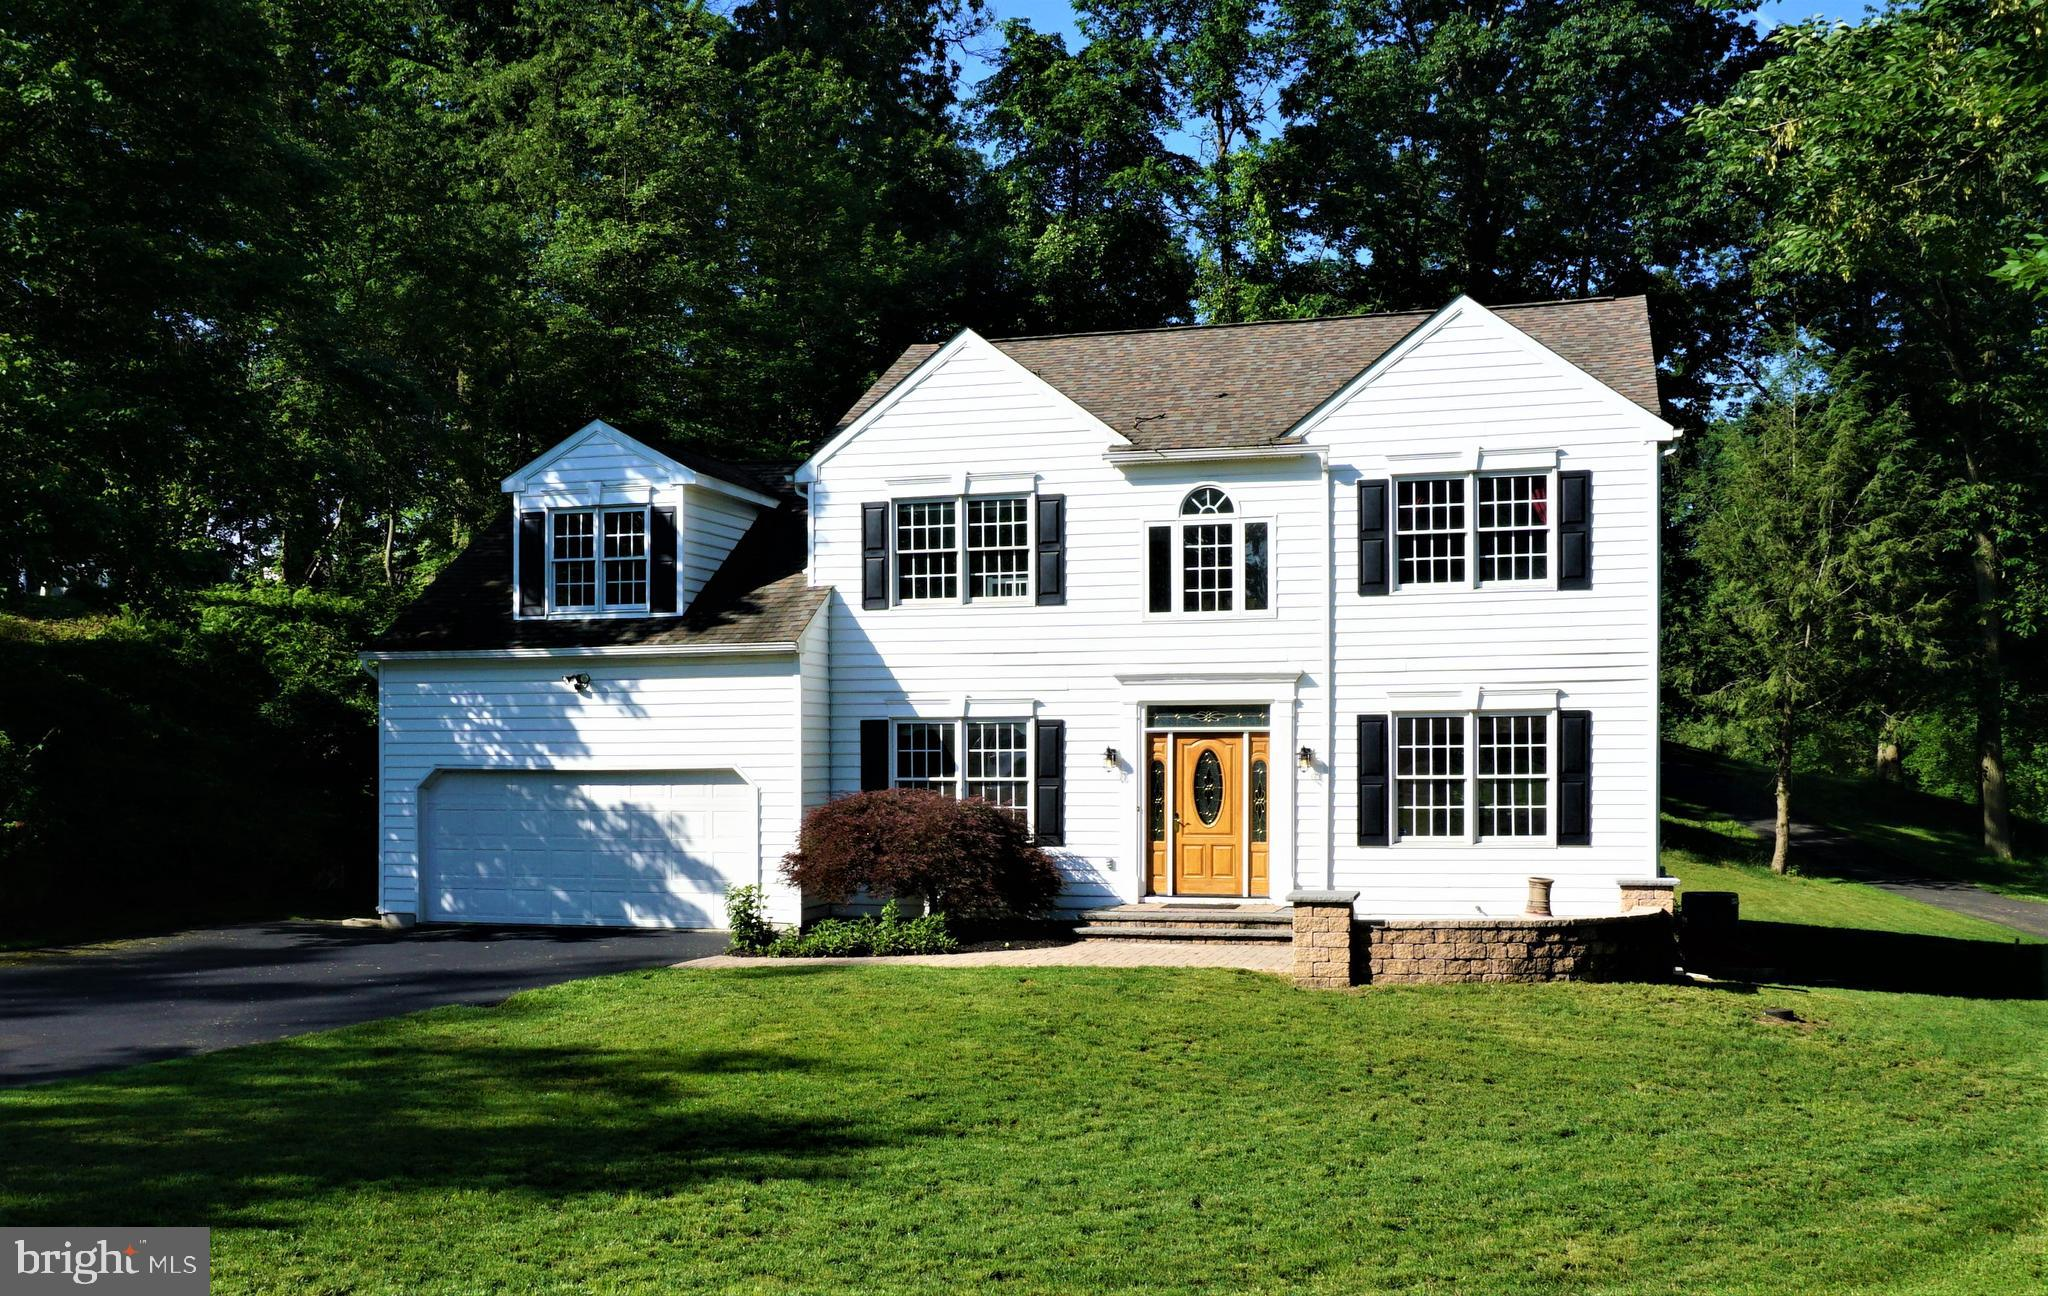 Beautifully maintained and presented center hall colonial home ready for quick occupancy. Featuring over 3,740 sf of finished space this home has it all including 4-5 bedrooms and 3 1/2 bathrooms. Tucked amongst the woodlands of the Woods of Brookfield neighborhood this prime location offers a peaceful setting sure to please. Step inside the welcoming two story foyer featuring hardwood flooring complemented with a turned hardwood staircase. The main level includes a formal living room, a private study/office with double doors and built-in bookshelves, a formal dining room, a gourmet kitchen with granite counters and a vaulted ceiling family room with a masonry gas fireplace. Finishing the main level is a half bathroom, a convenient laundry room with custom cabinetry, a two car garage and 20' rear deck featuring green woodland views. Upstairs there are four bedrooms and two baths including the spacious master suite with a vaulted ceiling, a large custom fitted walk in closet, and a luxurious master bath including a whirlpool tub, and a large stall shower with designer ceramic tile. The fully finished lower level offers the extra space you desire including a 5th bedroom/study with stairs to the side yard, a full bathroom, a second 28' family room with a kid's hideout, and a separate storage area ready for your treasures. You'll love the fresh new carpeting on the upper two levels making this home truly move in condition. The home is perfectly positioned within West Goshen Township and part of the Award Winning West Chester Schools. Come see this residence for yourself, it is surely a place you will want to call HOME.